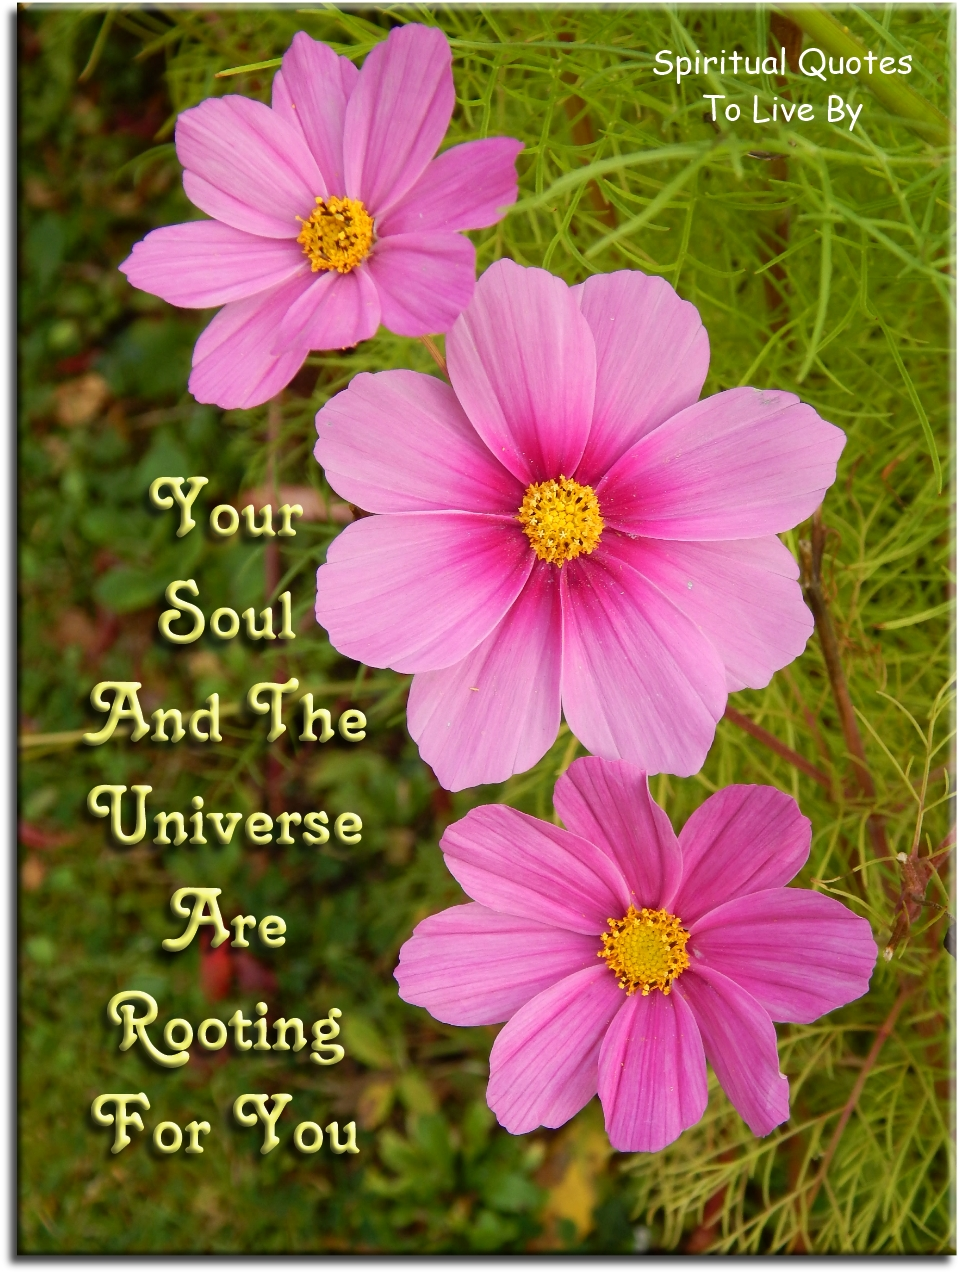 Your Soul and the Universe are rooting for you. - Spiritual Quotes To Live By